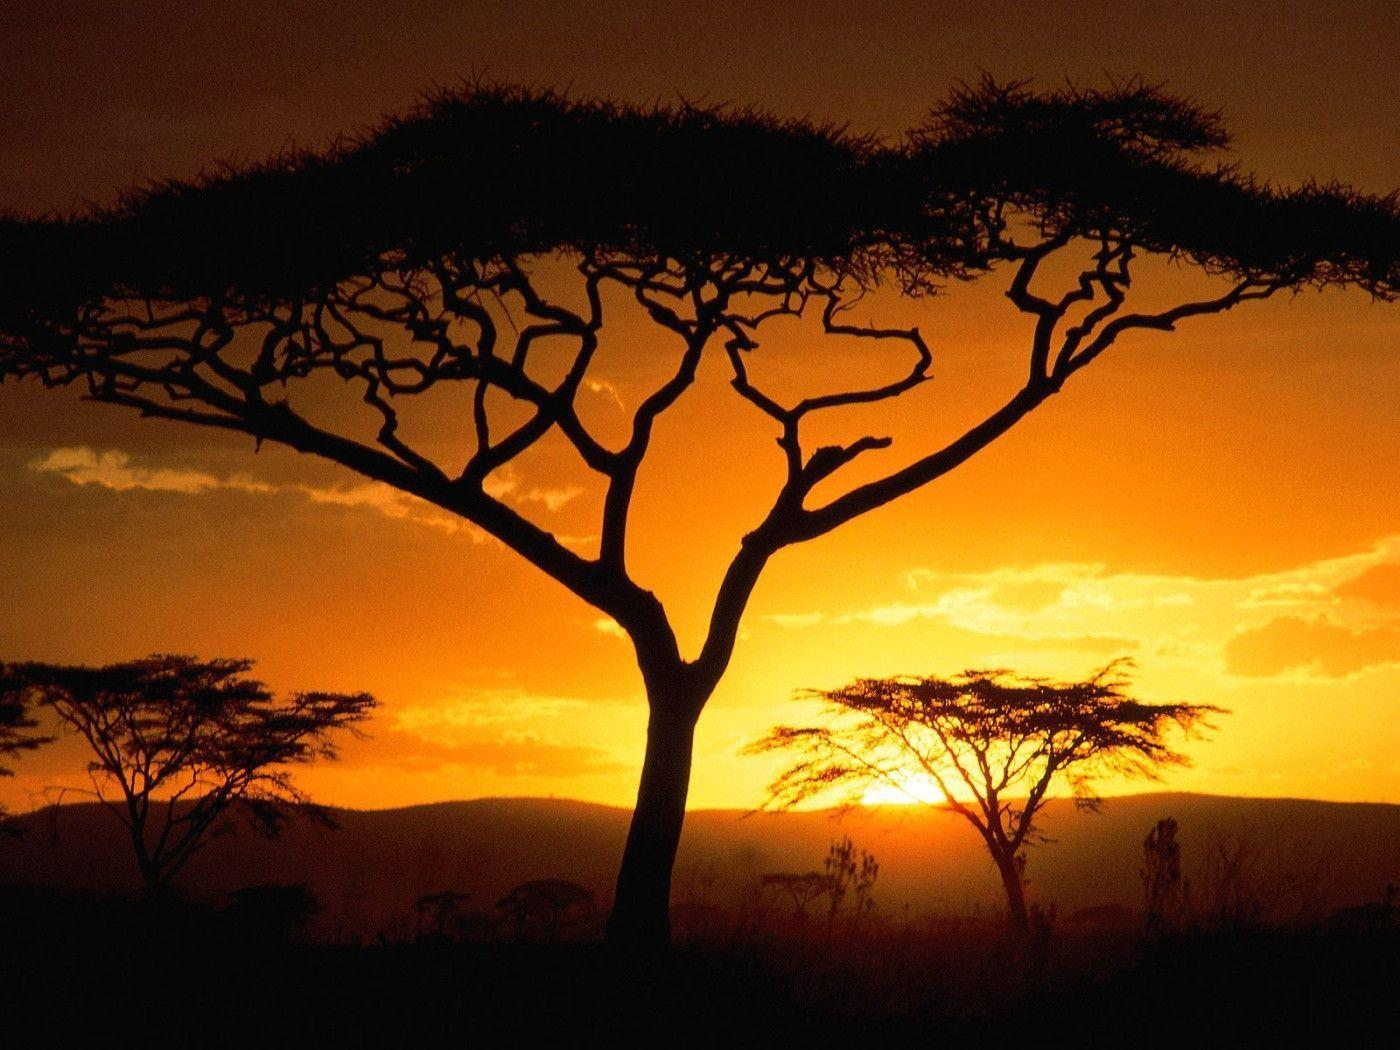 Tanzanian Sunset, Africa desktop wallpaper « Desktopia.